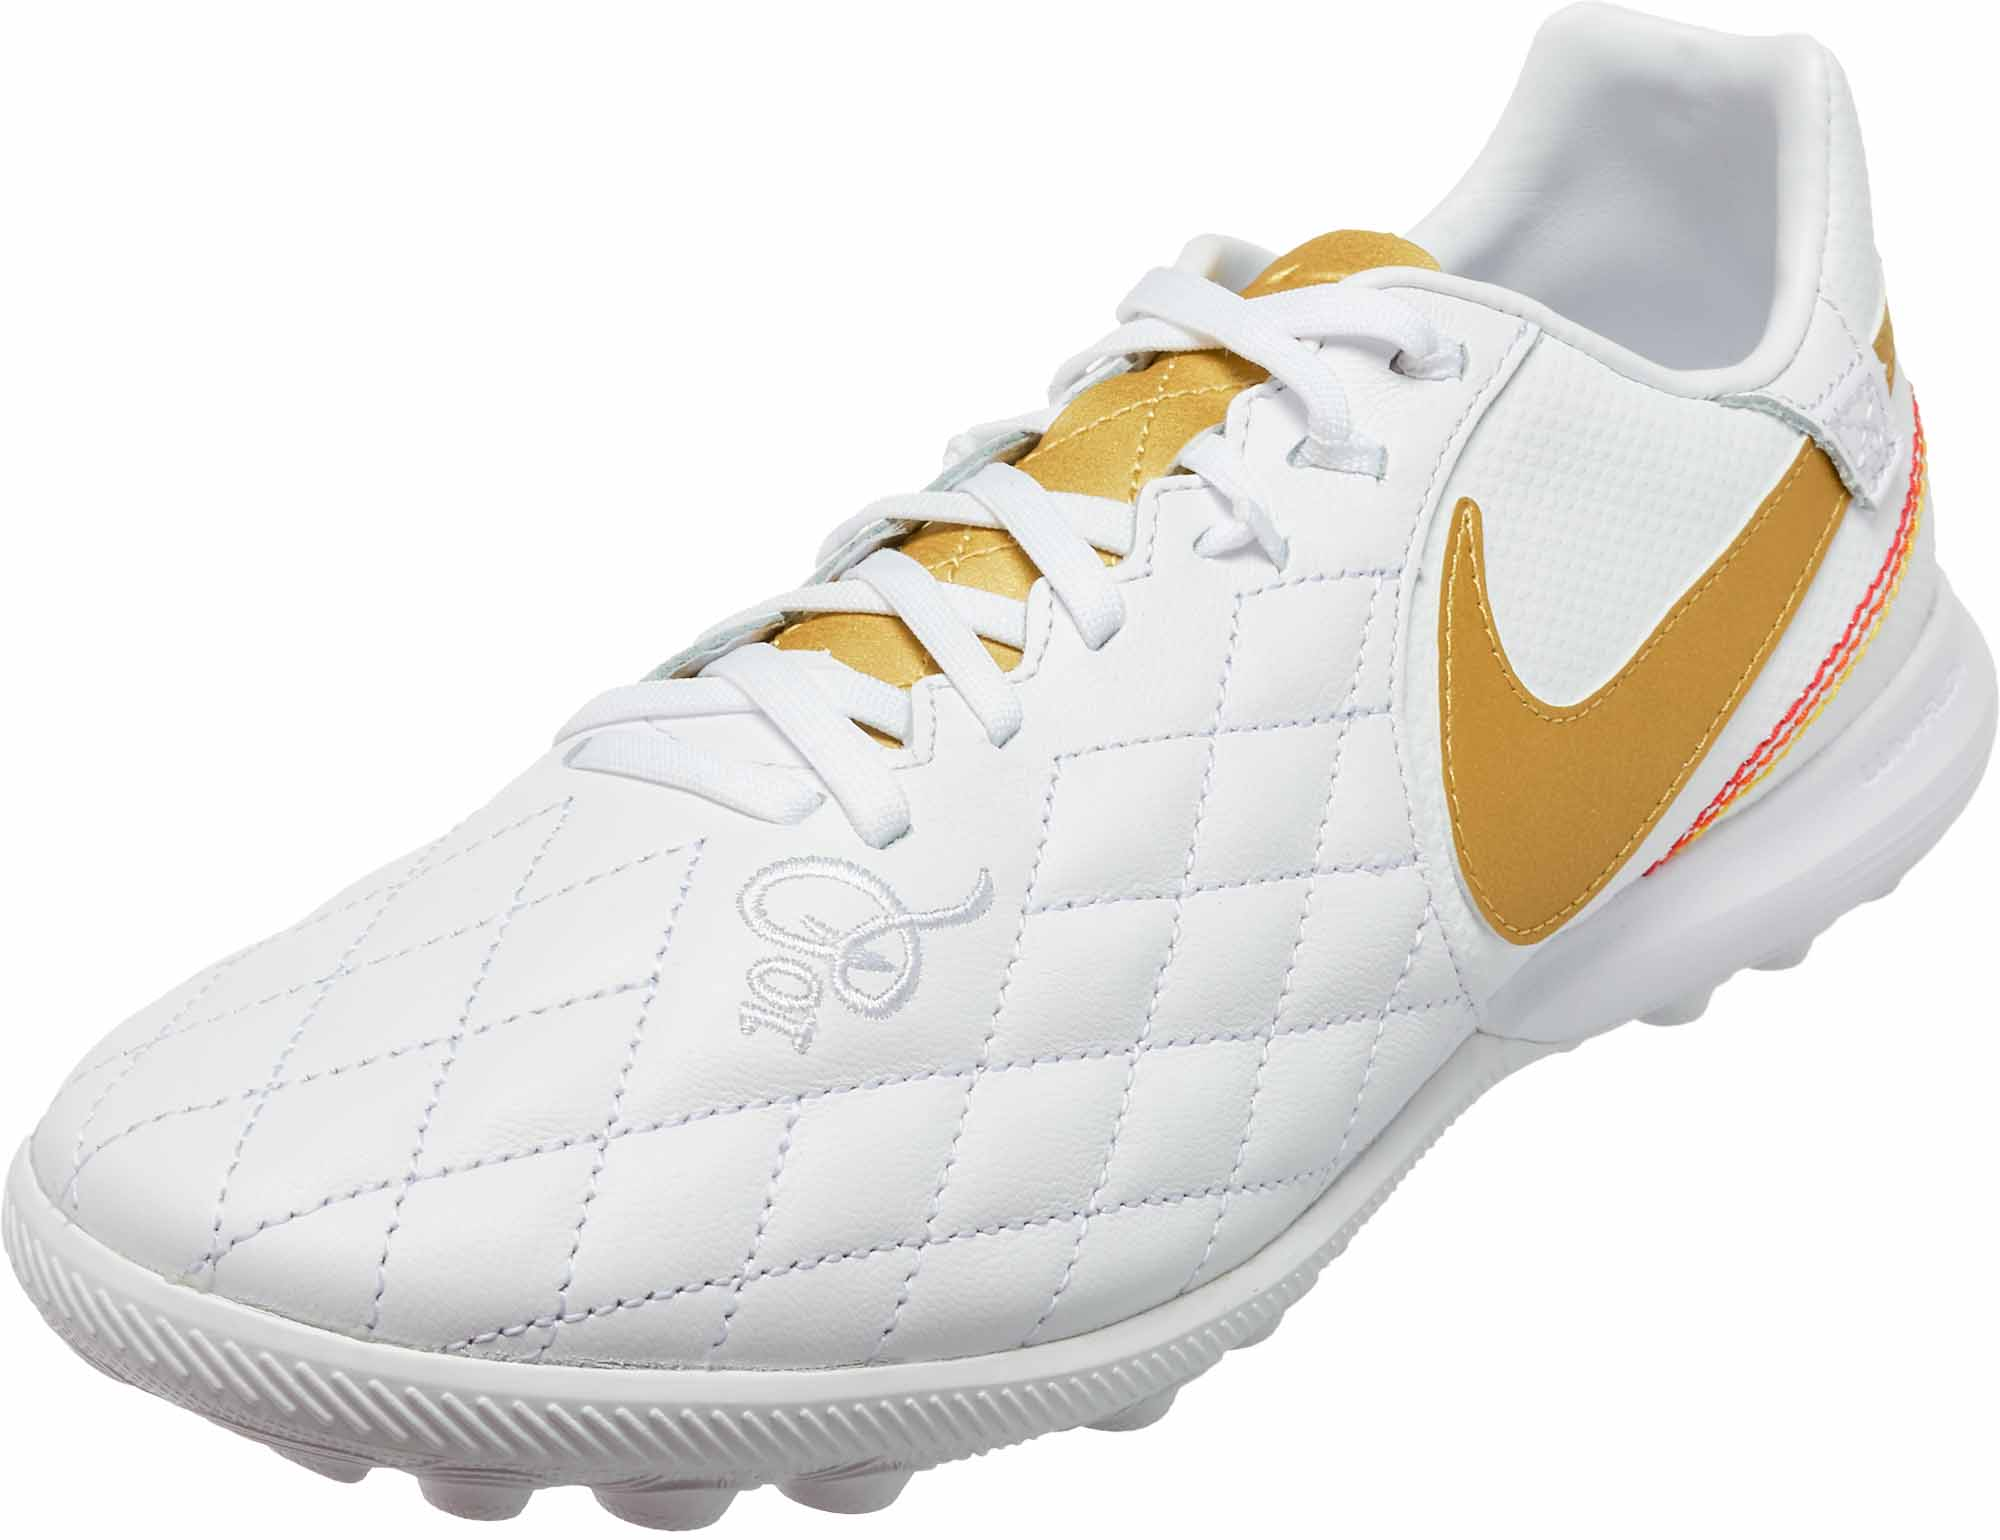 Nike Tiempo Soccer Shoes Reviews